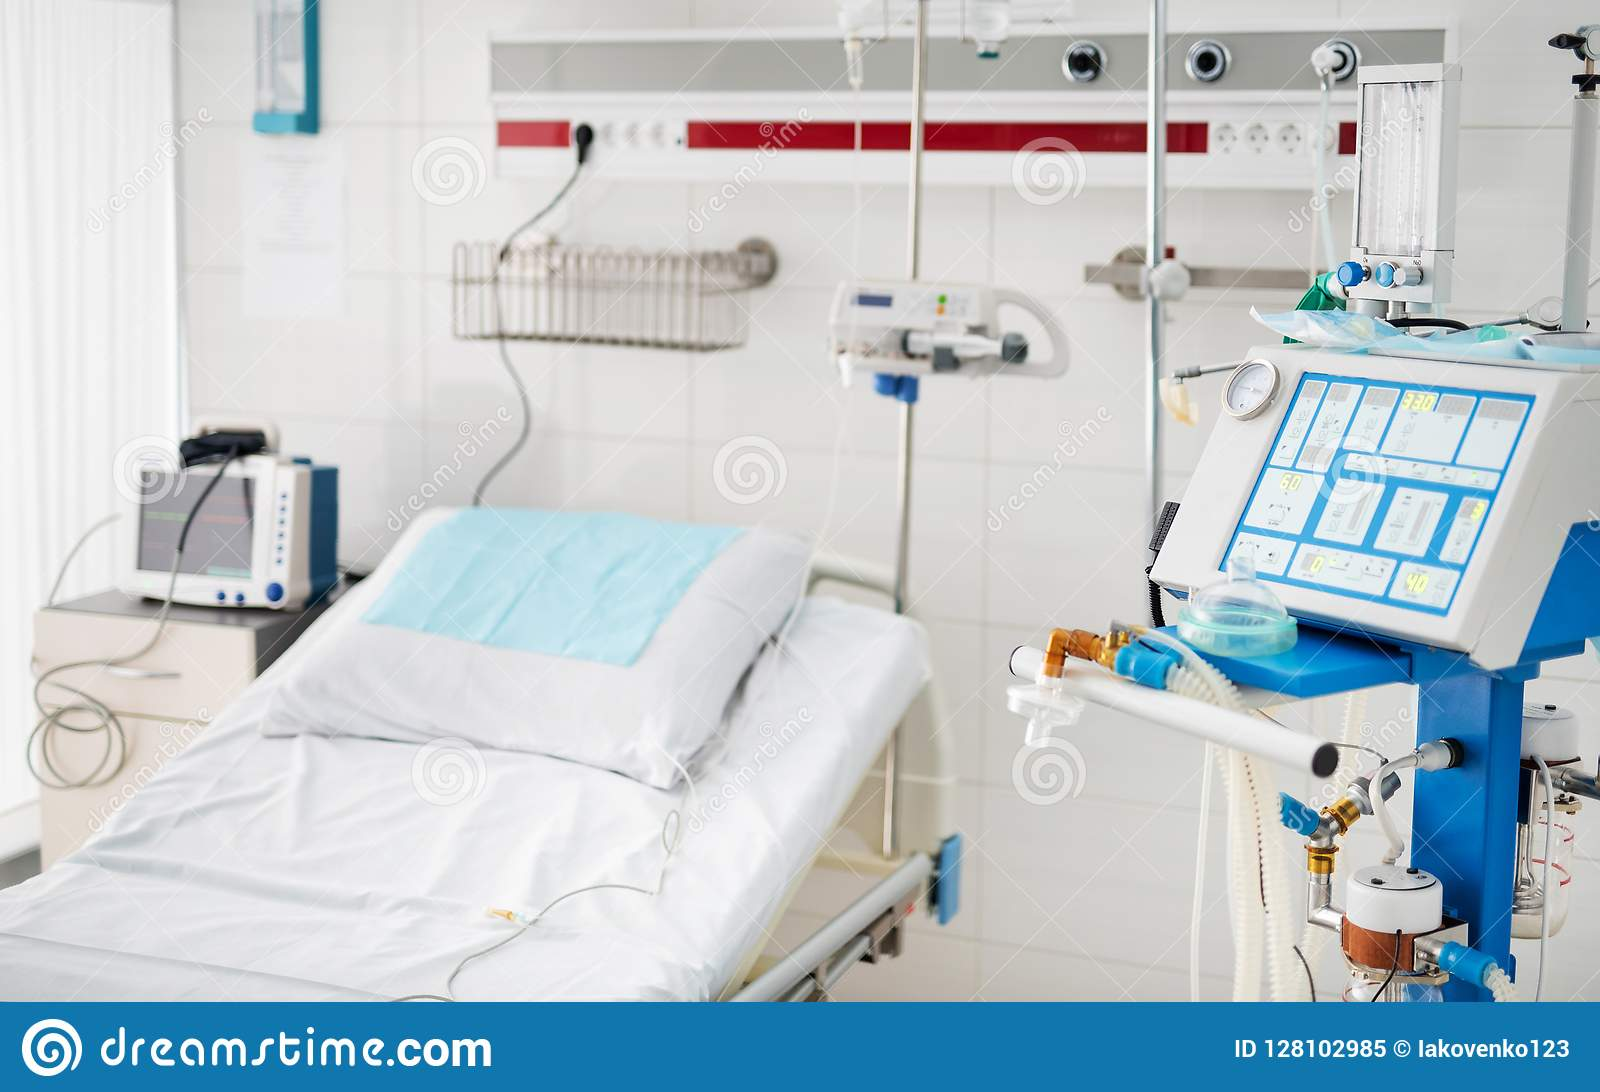 Ventilator Modern Modern Hospital Room With Bed And Ventilation Equipment Stock